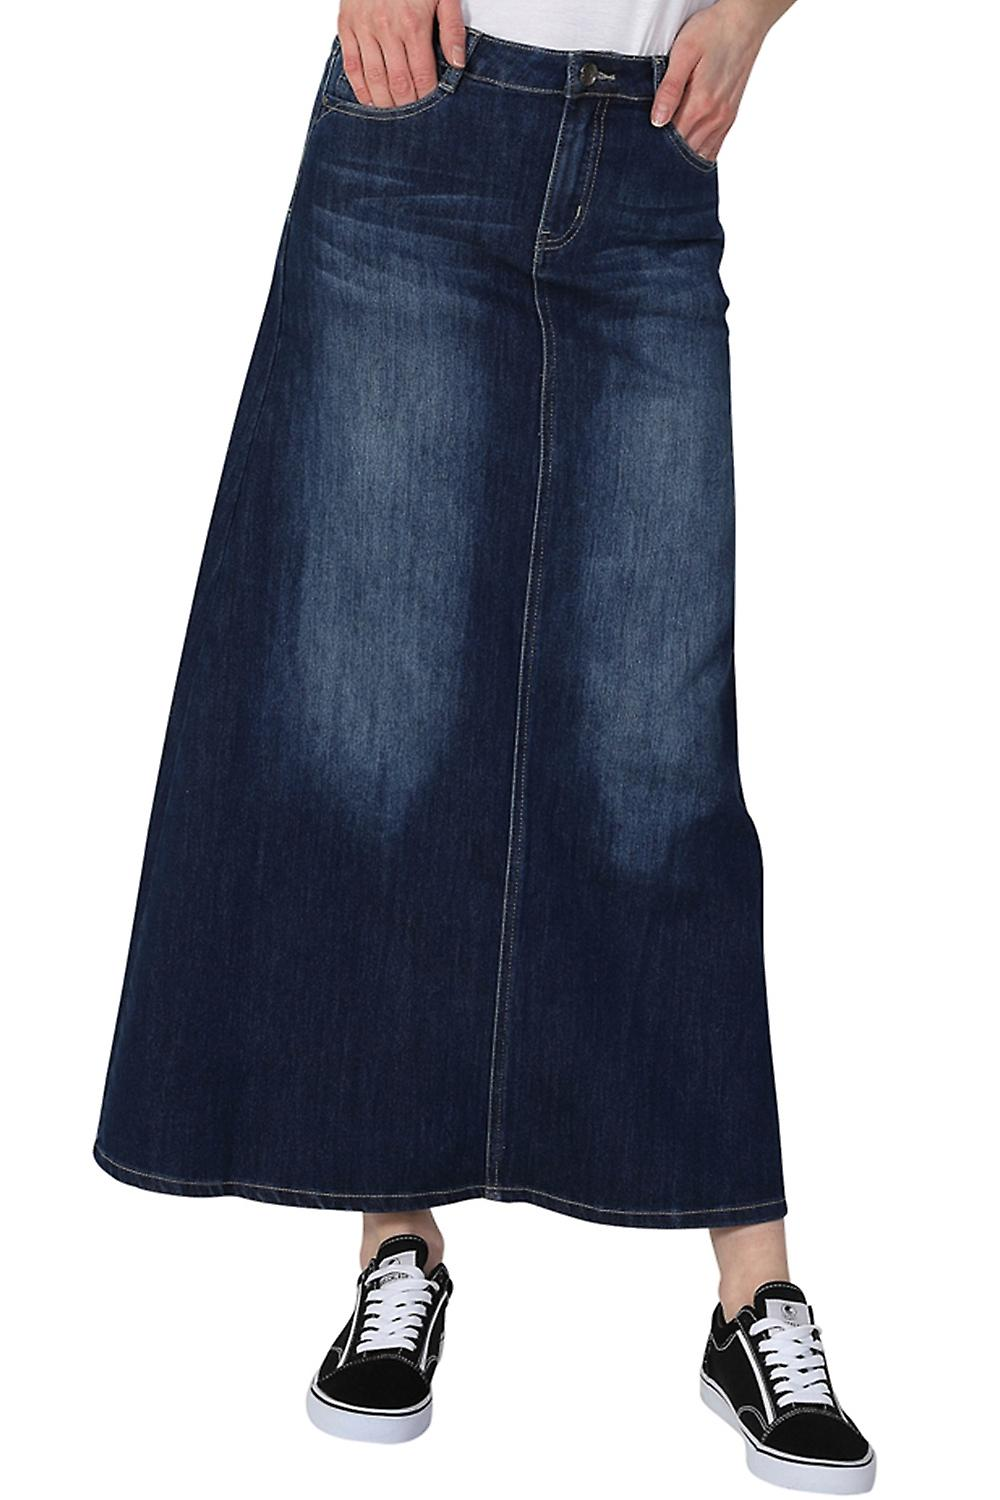 26c9a3ba79 Full Length Denim Skirt | Huston Fislar Photography